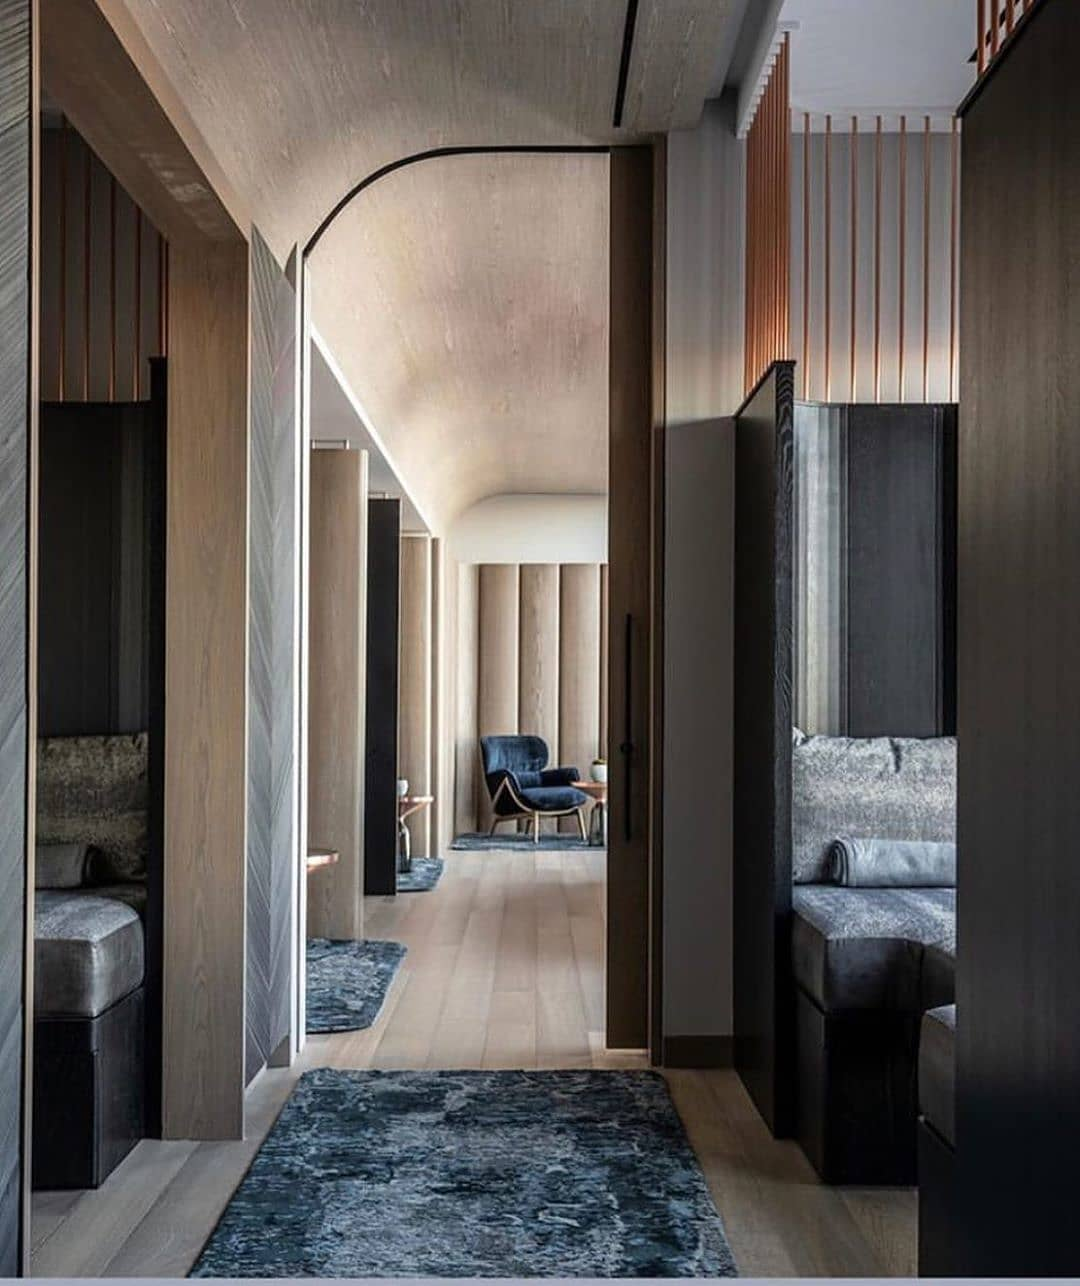 view down hallway at the spa by equinox hotels with view of private e.scape pods and to spa waiting room